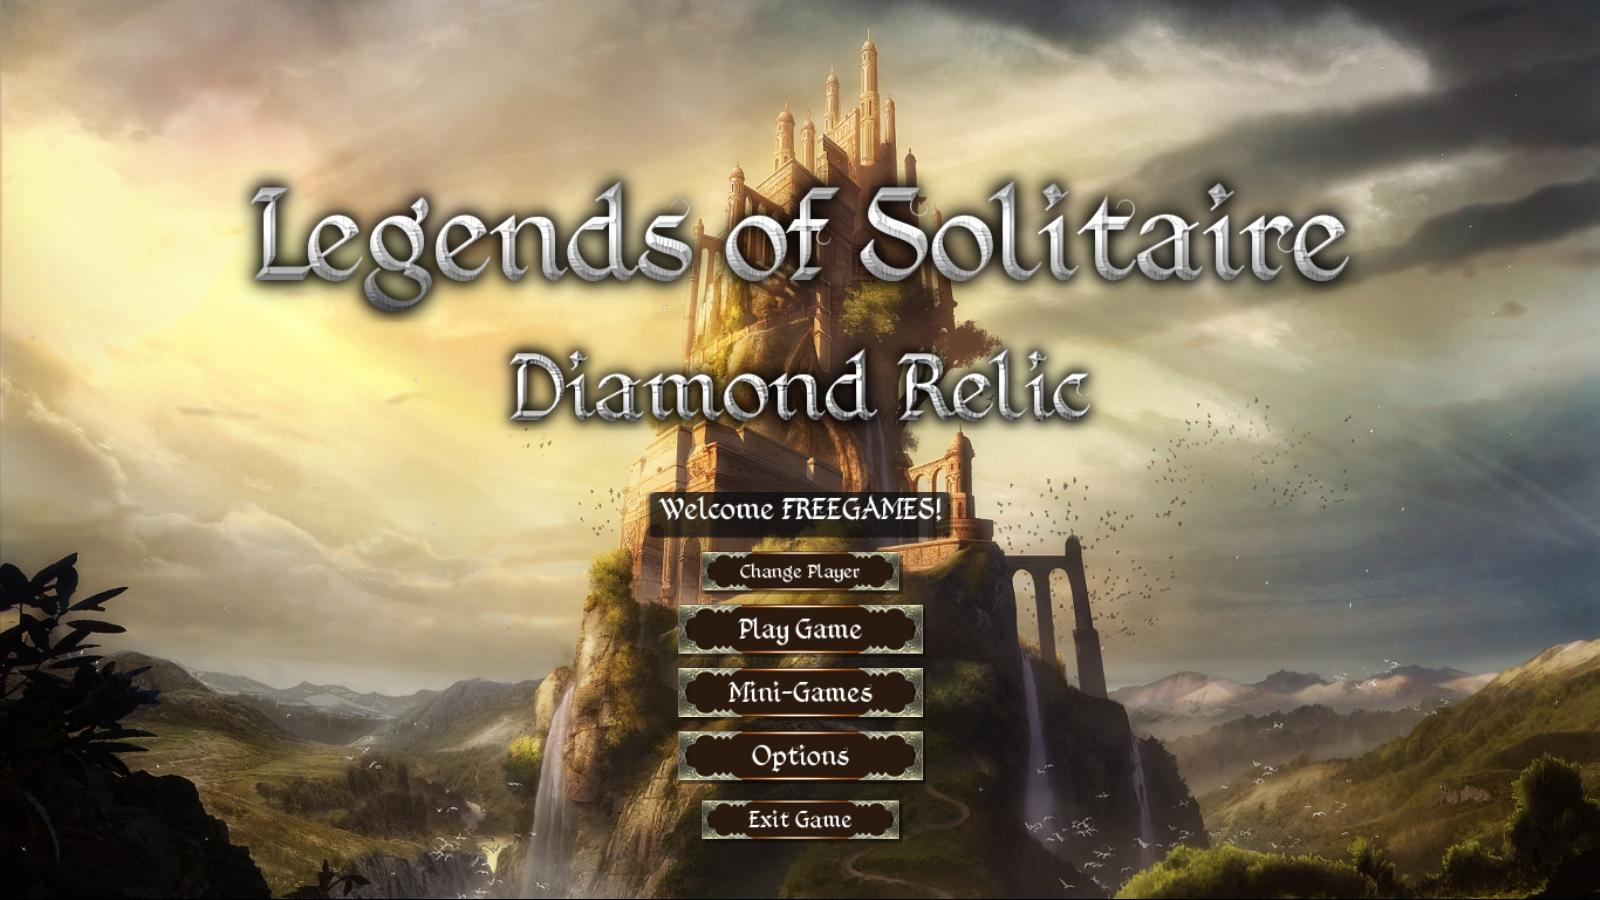 Легенды пасьянса 3: Алмазная реликвия | Legends of Solitaire 3: Diamond Relic (En)